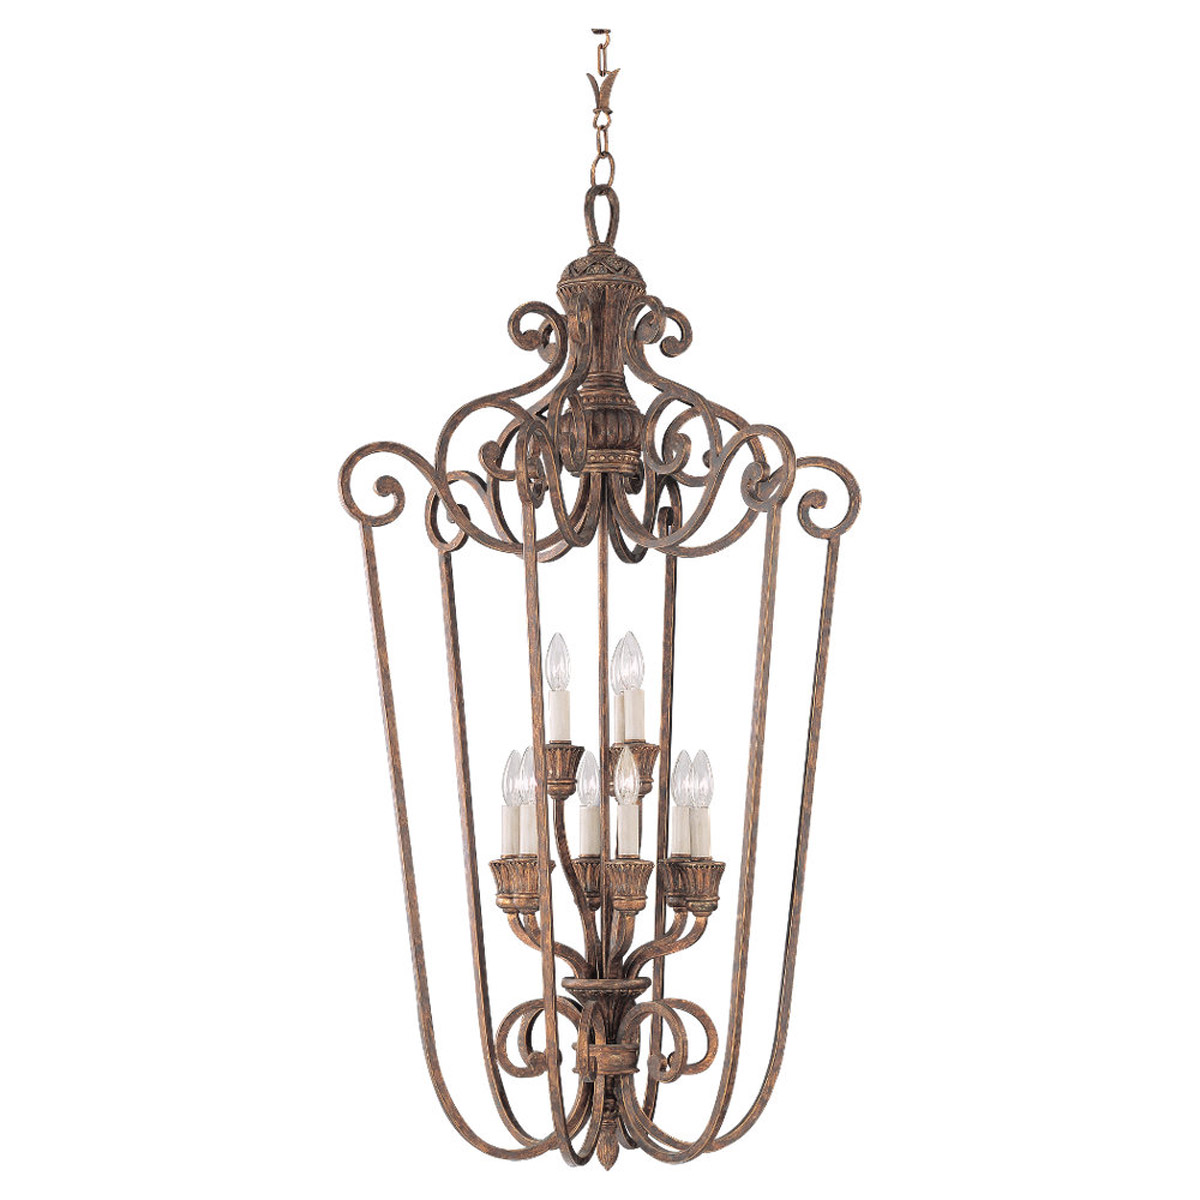 Sea Gull Lighting Highlands 9 Light Foyer Pendant in Regal Bronze 51257-758